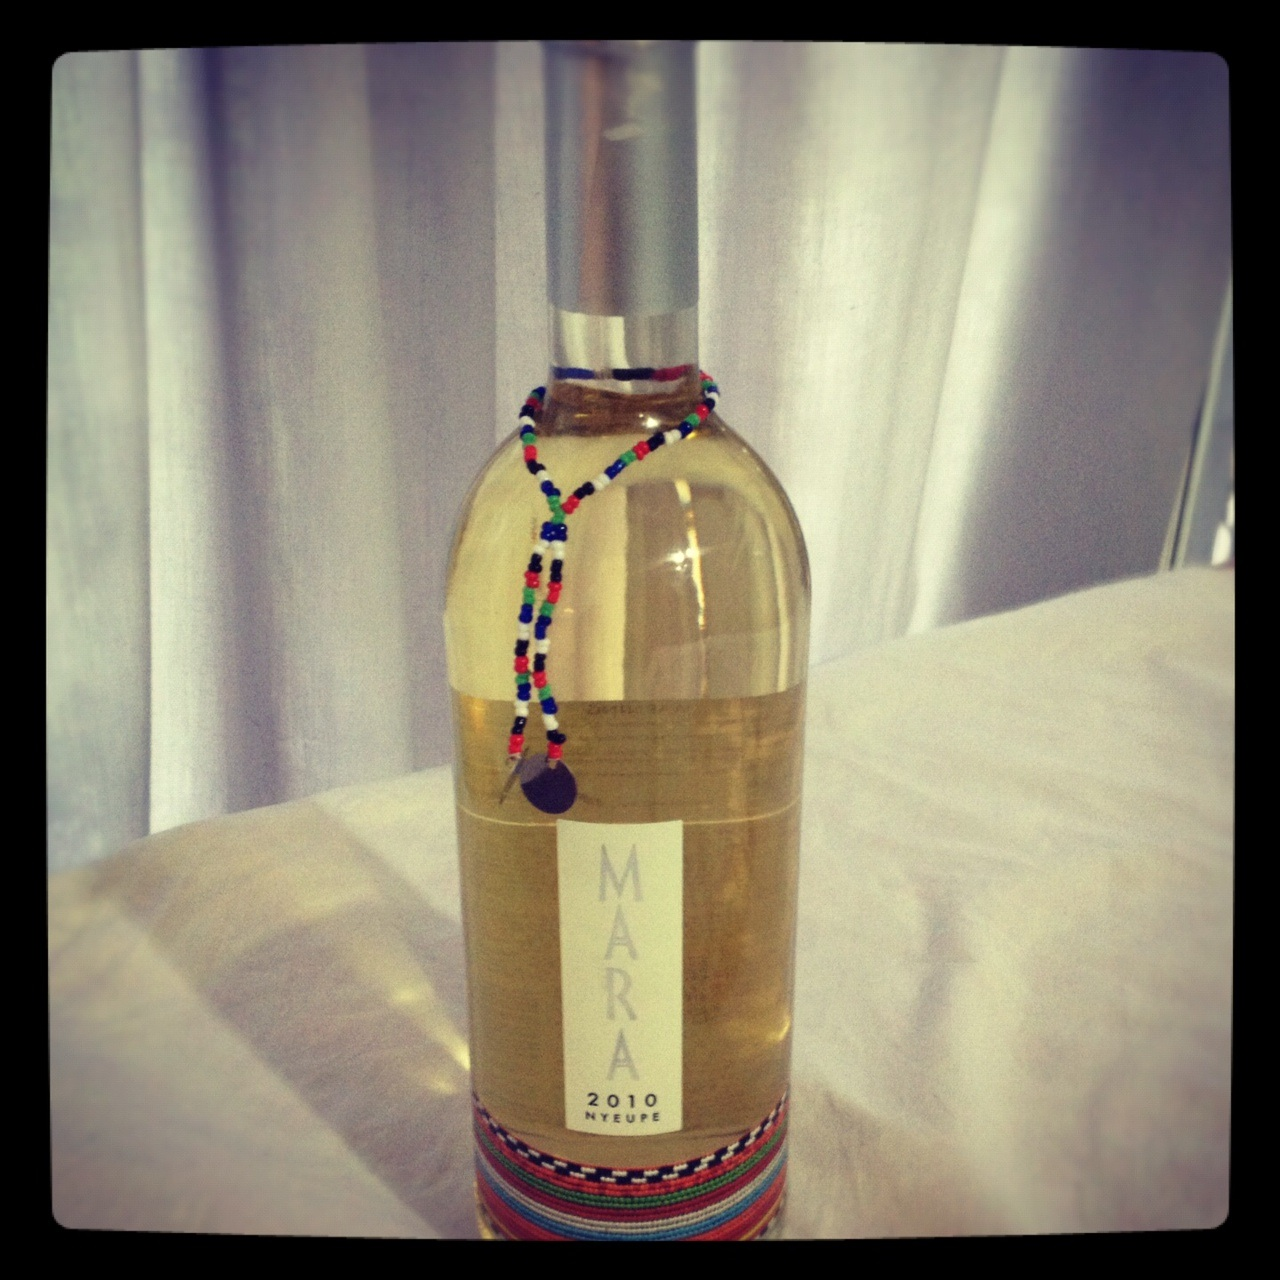 Mara Wine - with wine jewelry!